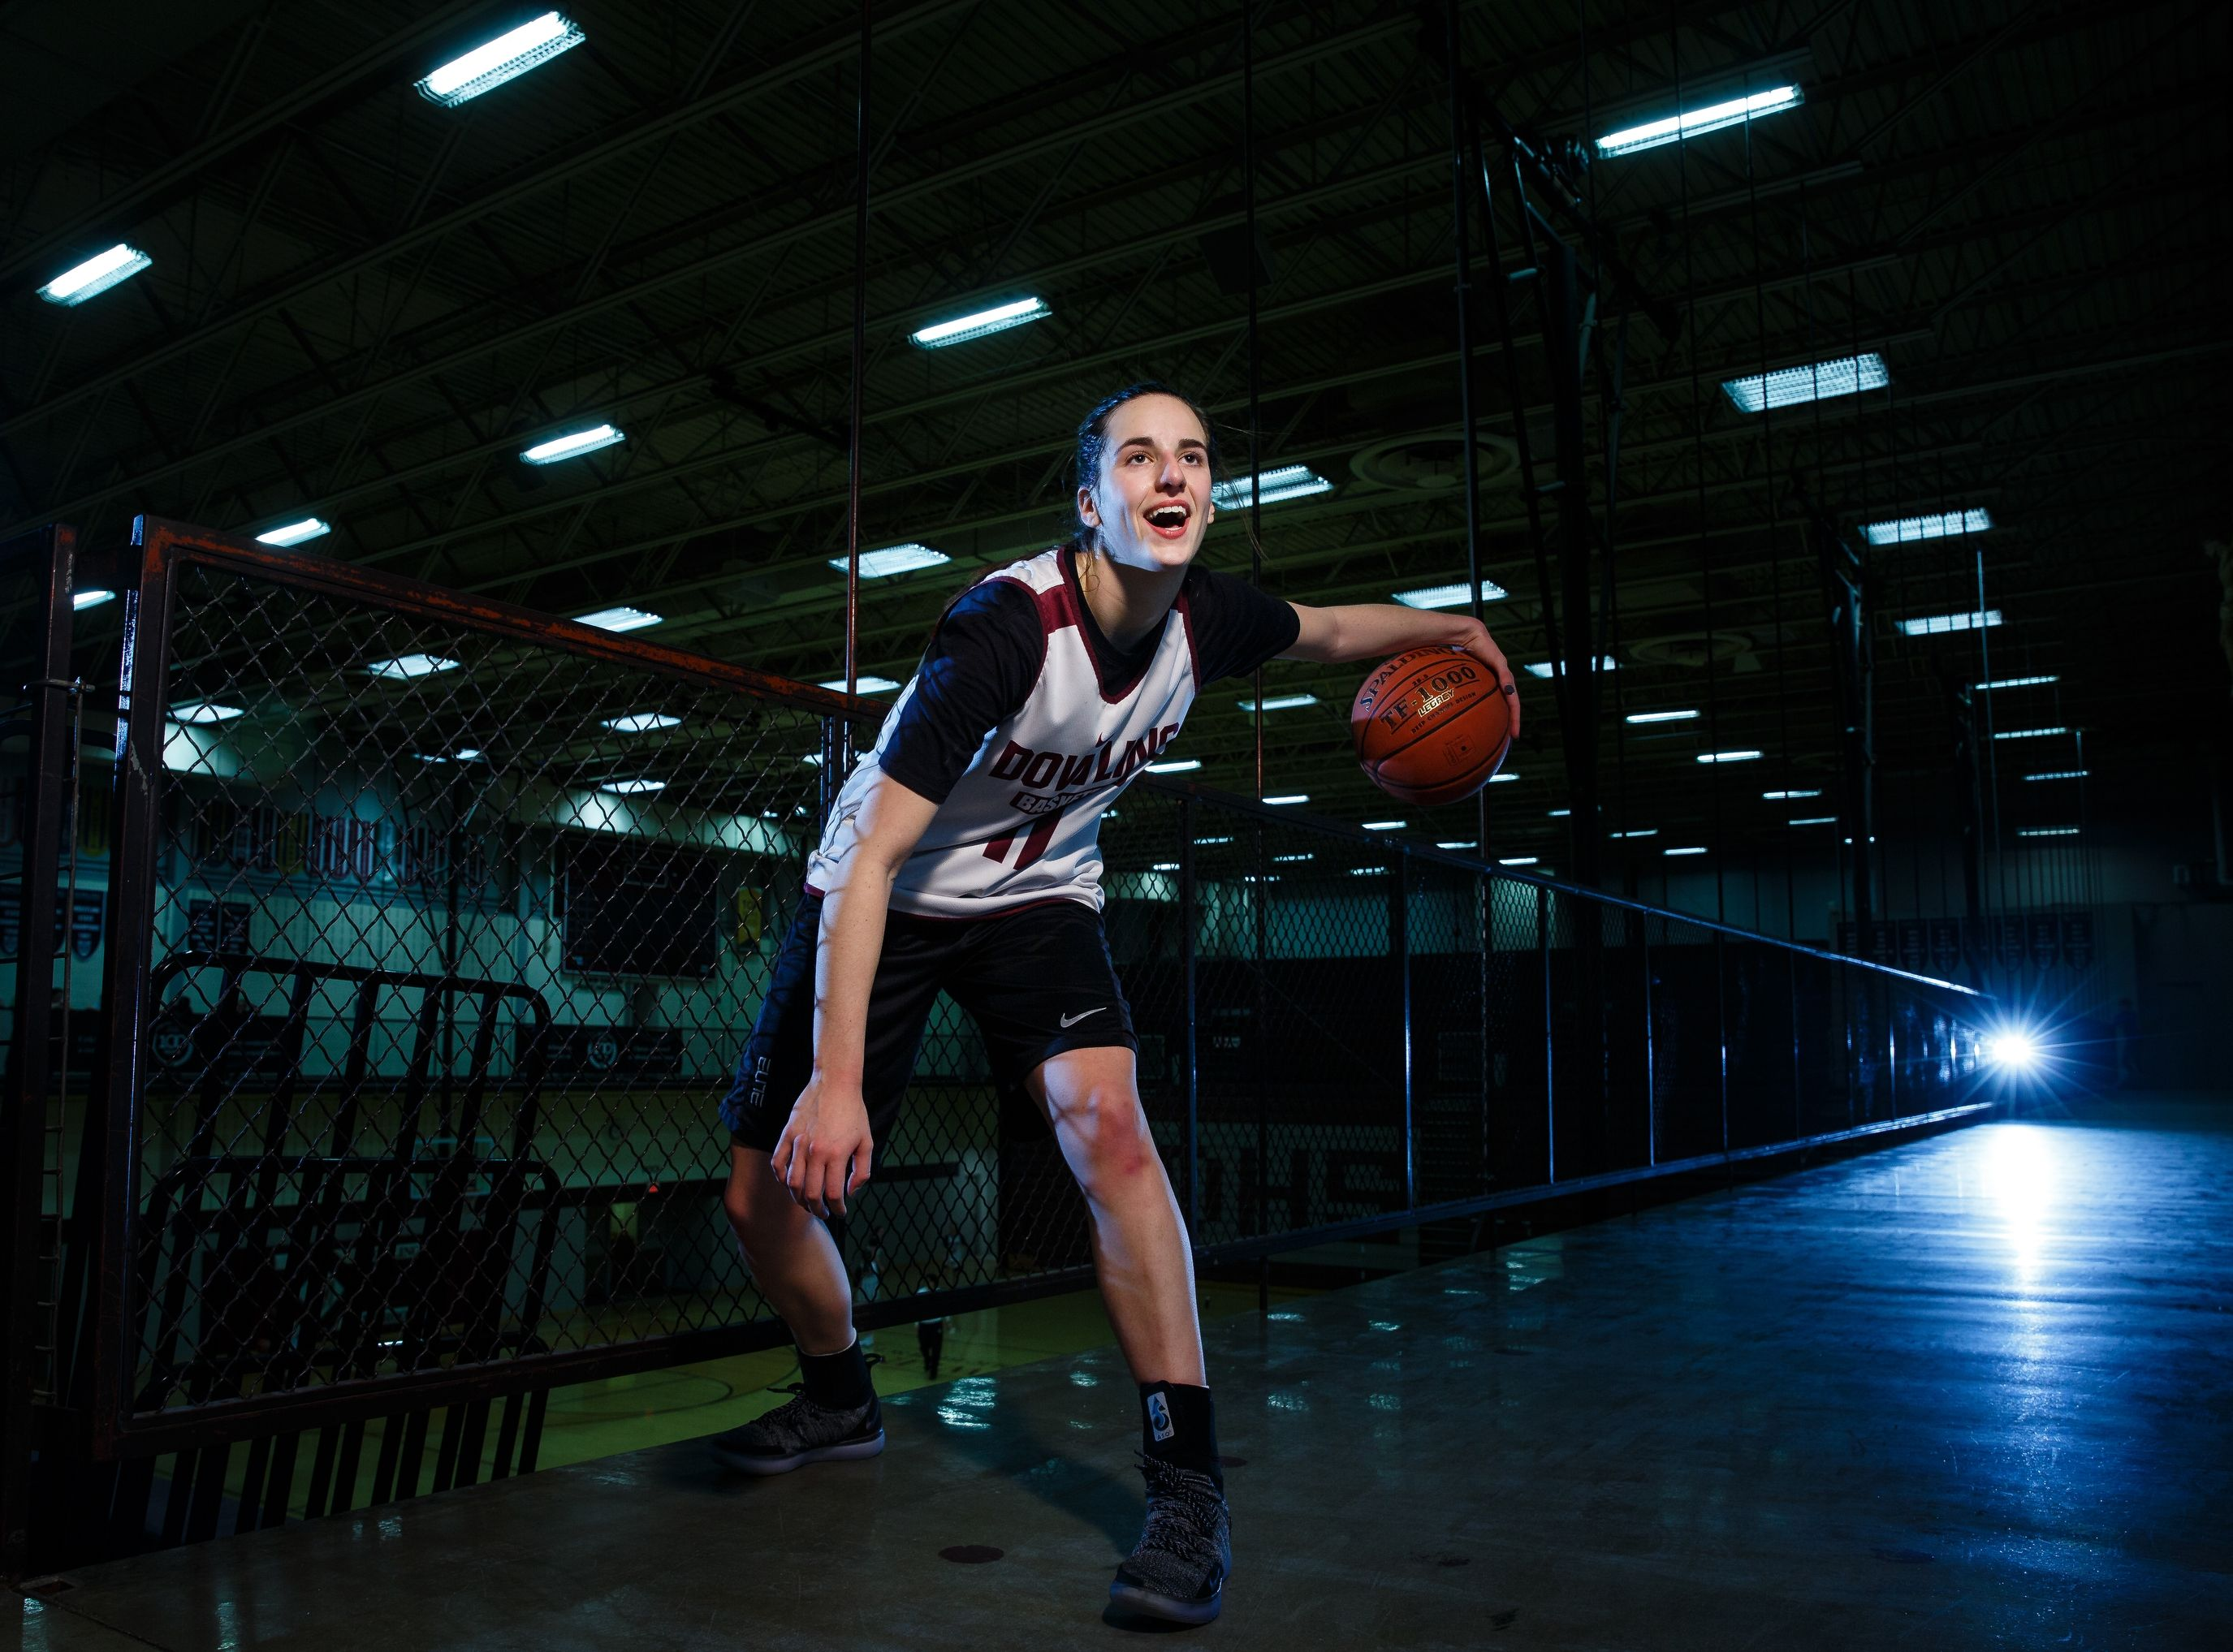 Dowling Catholic's Caitlin Clark poses for a photo during practice on Wednesday, Feb. 13, 2019 in Des Moines. Clark is considered one of the best girls' basketball players in recent Iowa history. (Photo: Brian Powers/The Register)